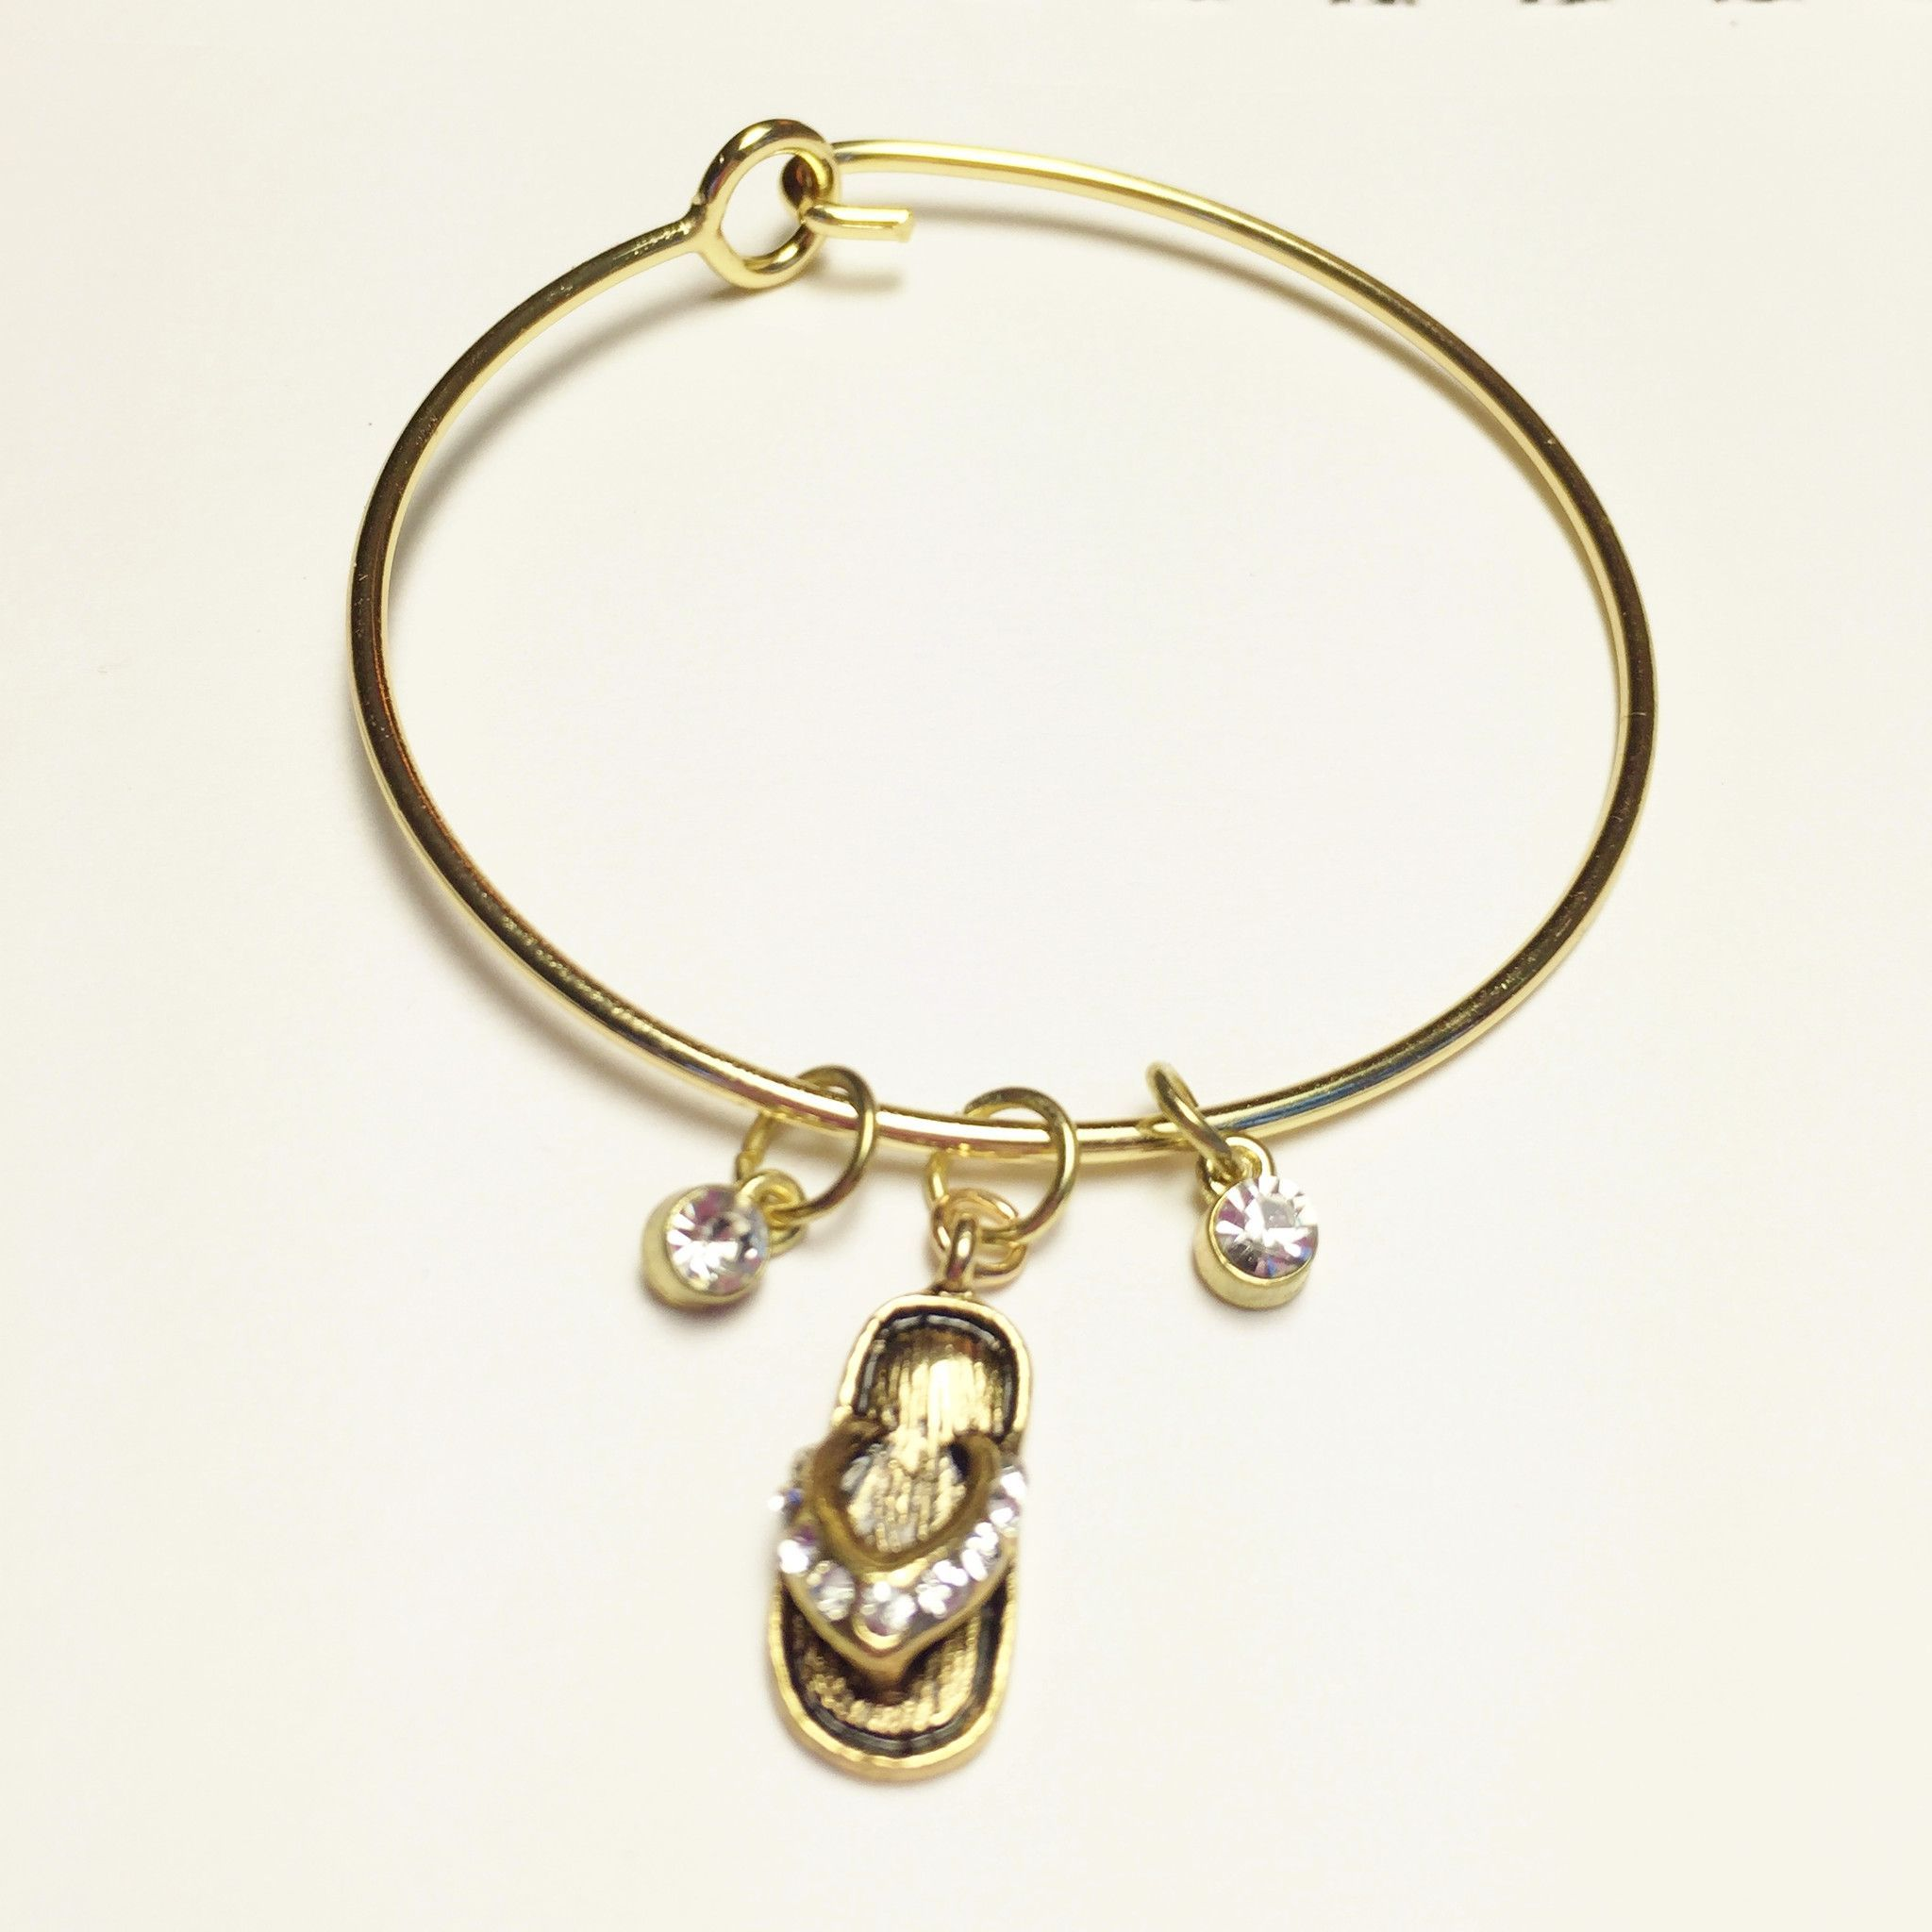 bs bracelet sweetie bangle hires gb links of charm en and uk bracelets robin gold silver london sterling bangles